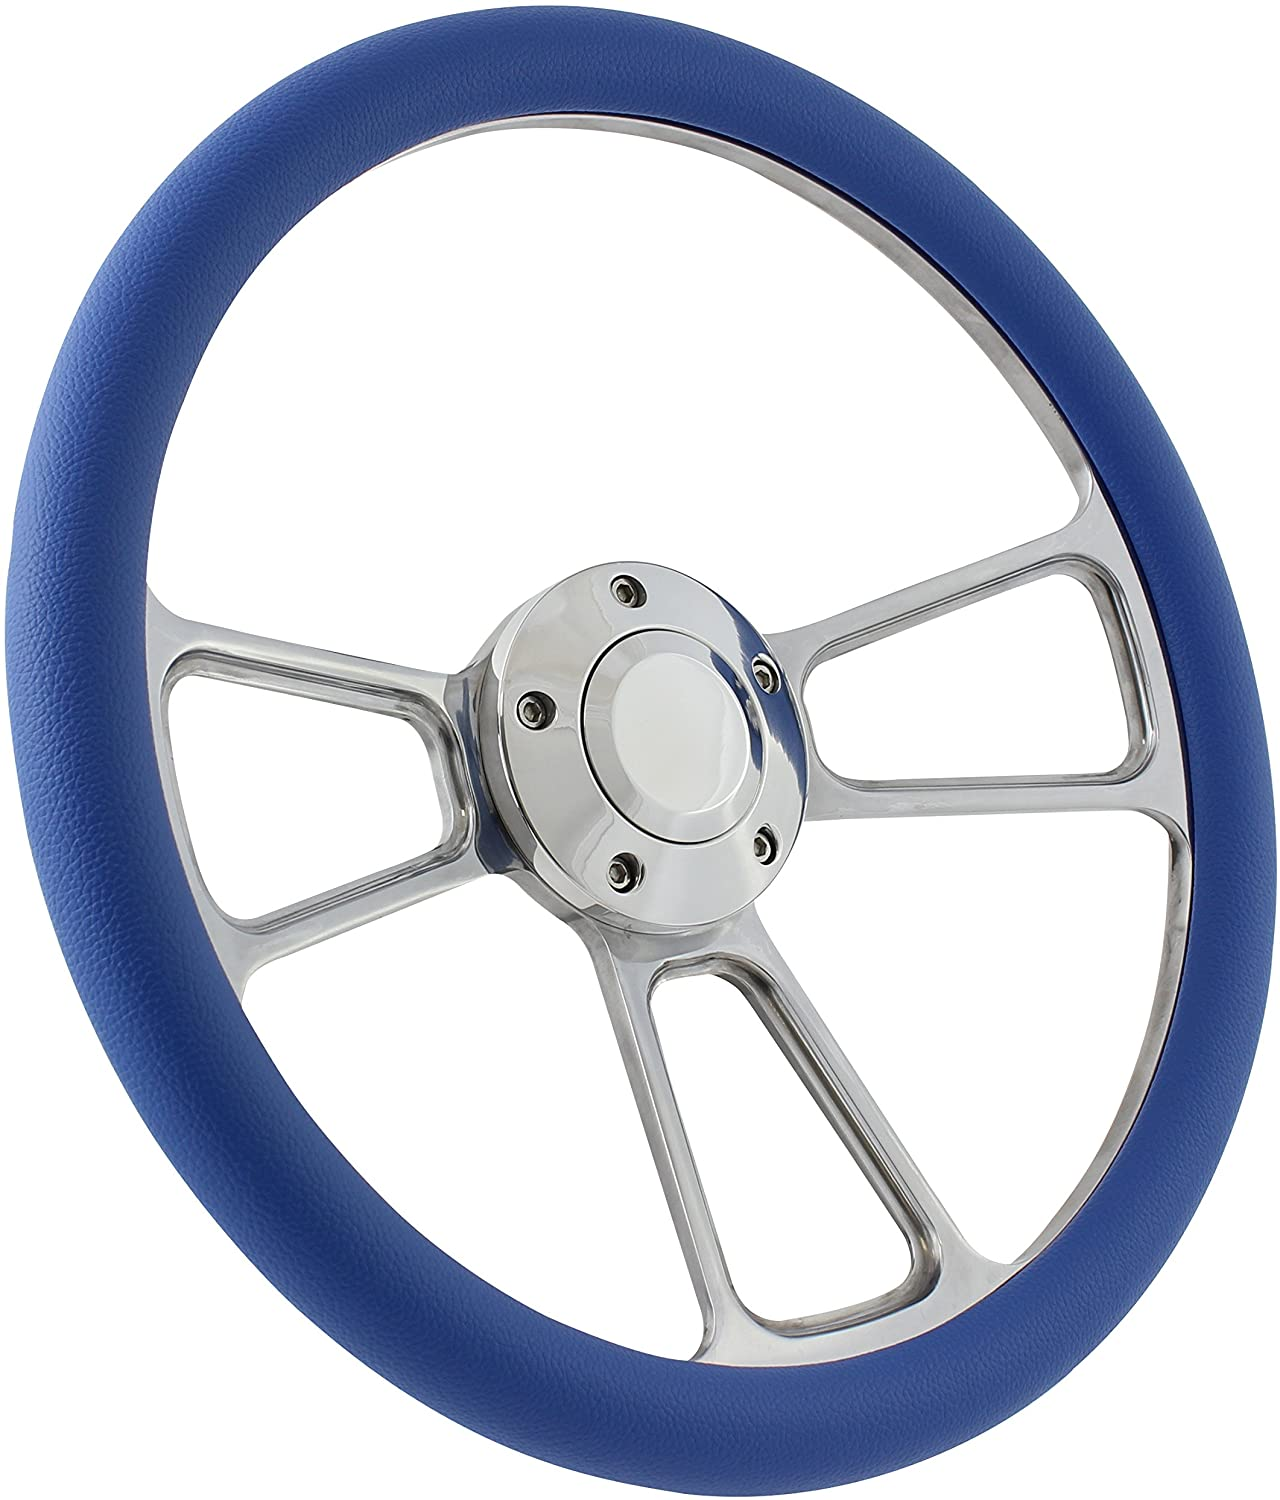 Boat Steering Wheel 14 Inch Aluminum With Sky Blue Vinyl Half Wrap, Horn Button, and Installation Adapter